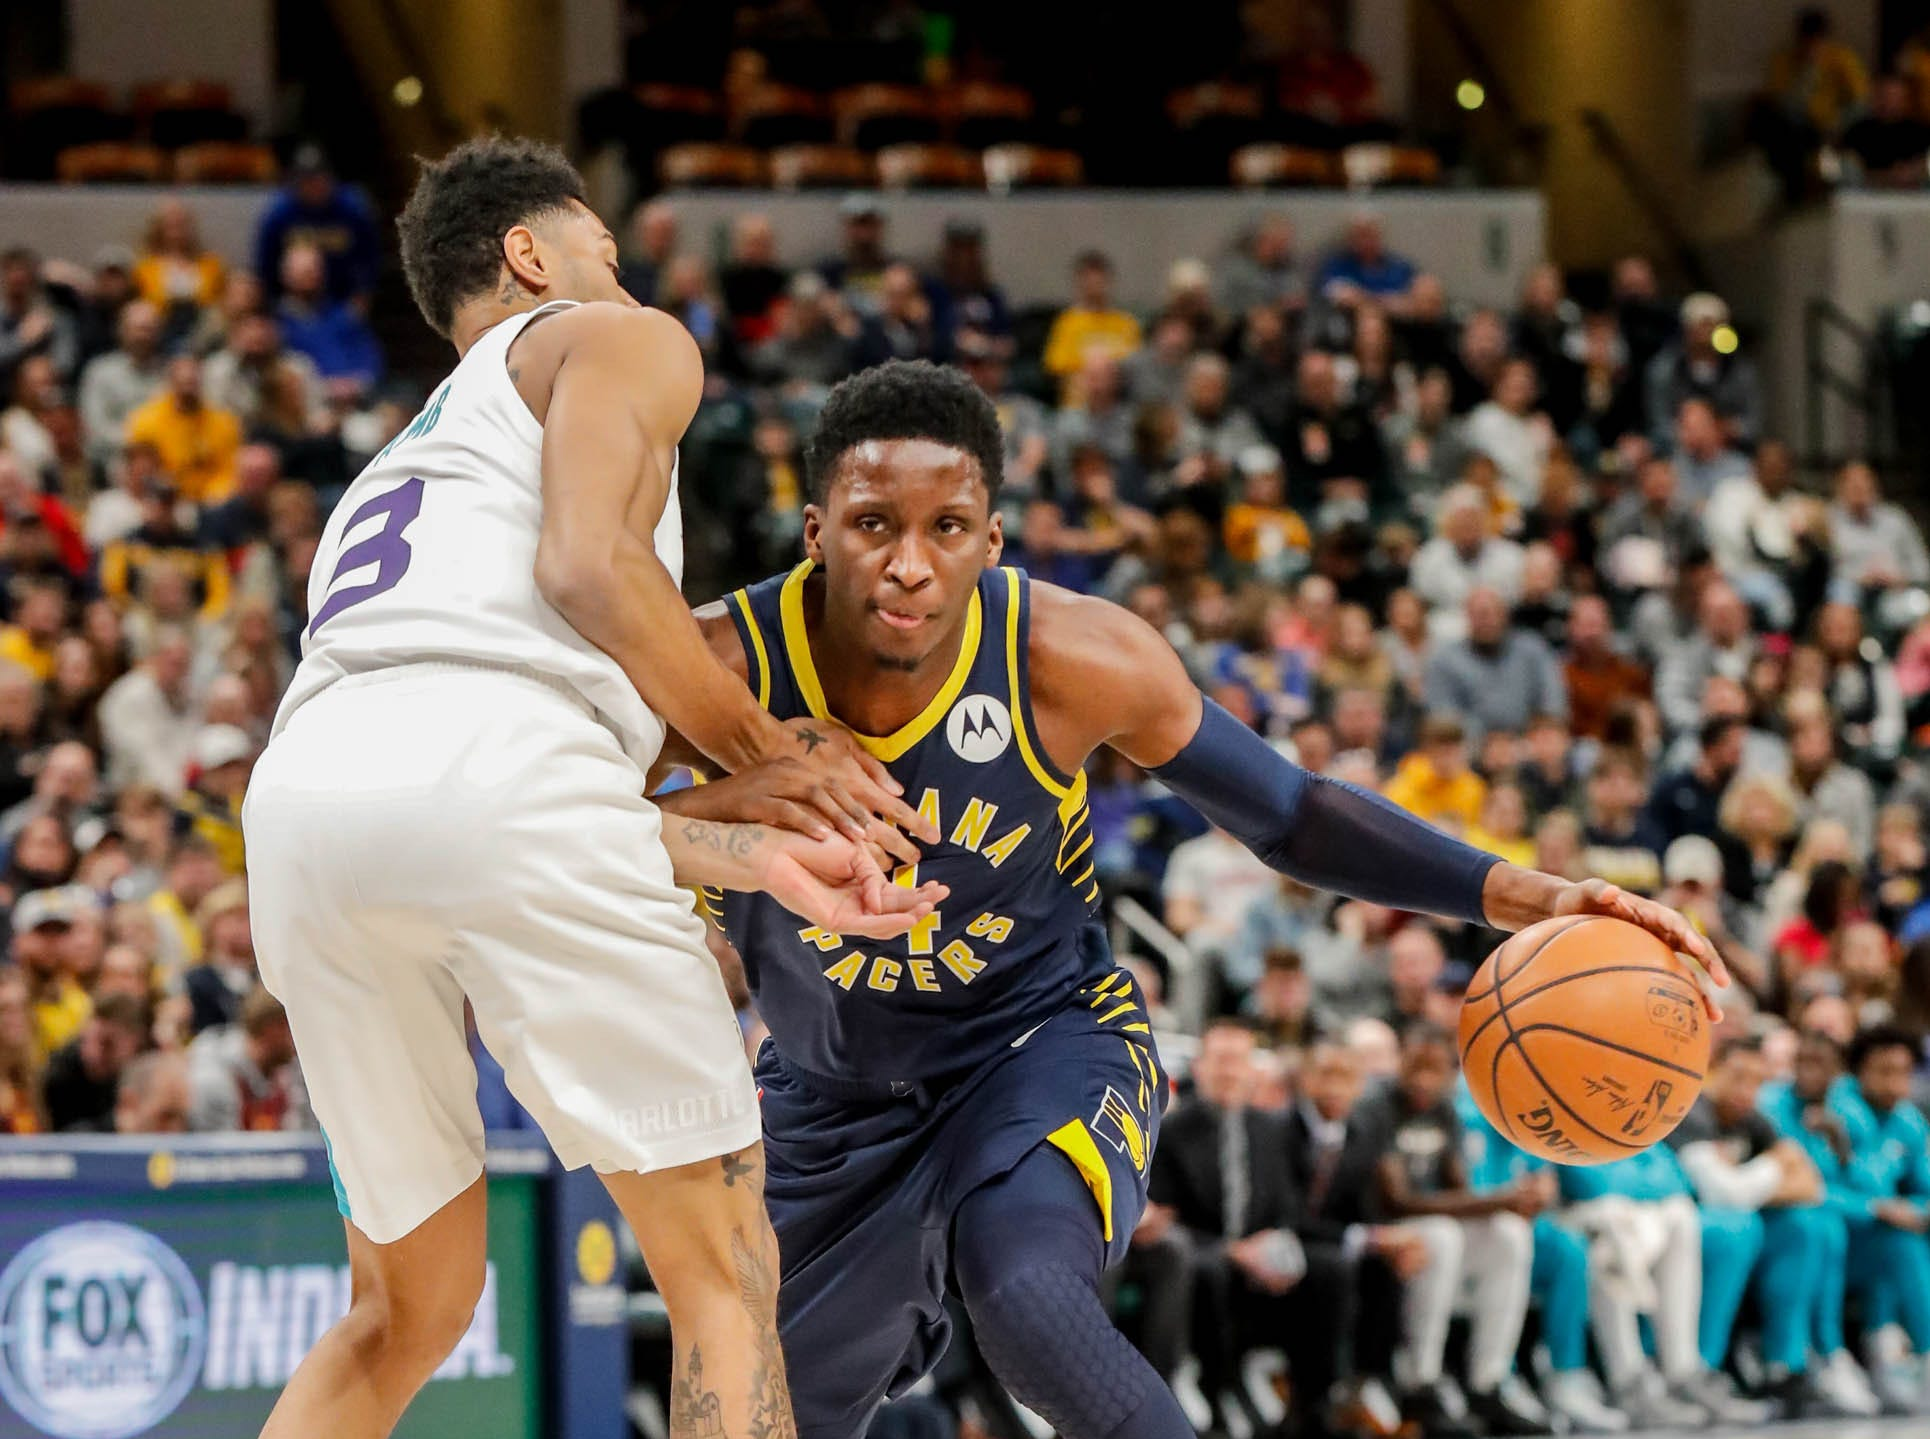 Indiana Pacers guard Victor Oladipo (4), dribbles past Charlotte Hornets guard Jeremy Lamb (3), during a game between the Pacers and Hornets at Bankers Life Fieldhouse on Sunday, Jan. 20, 2019.